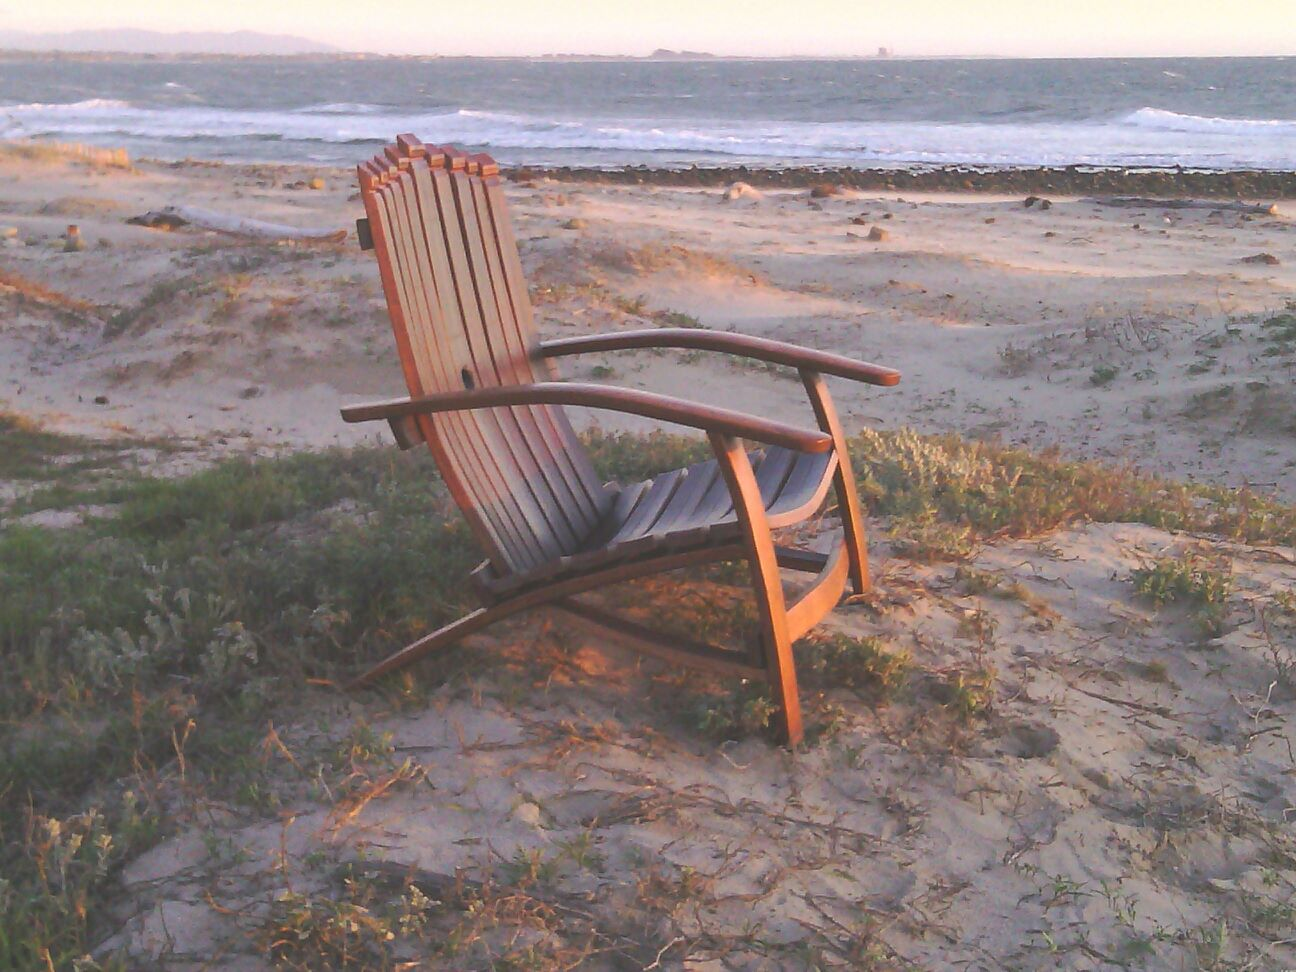 The most comfortable chair to watch the sunset in.